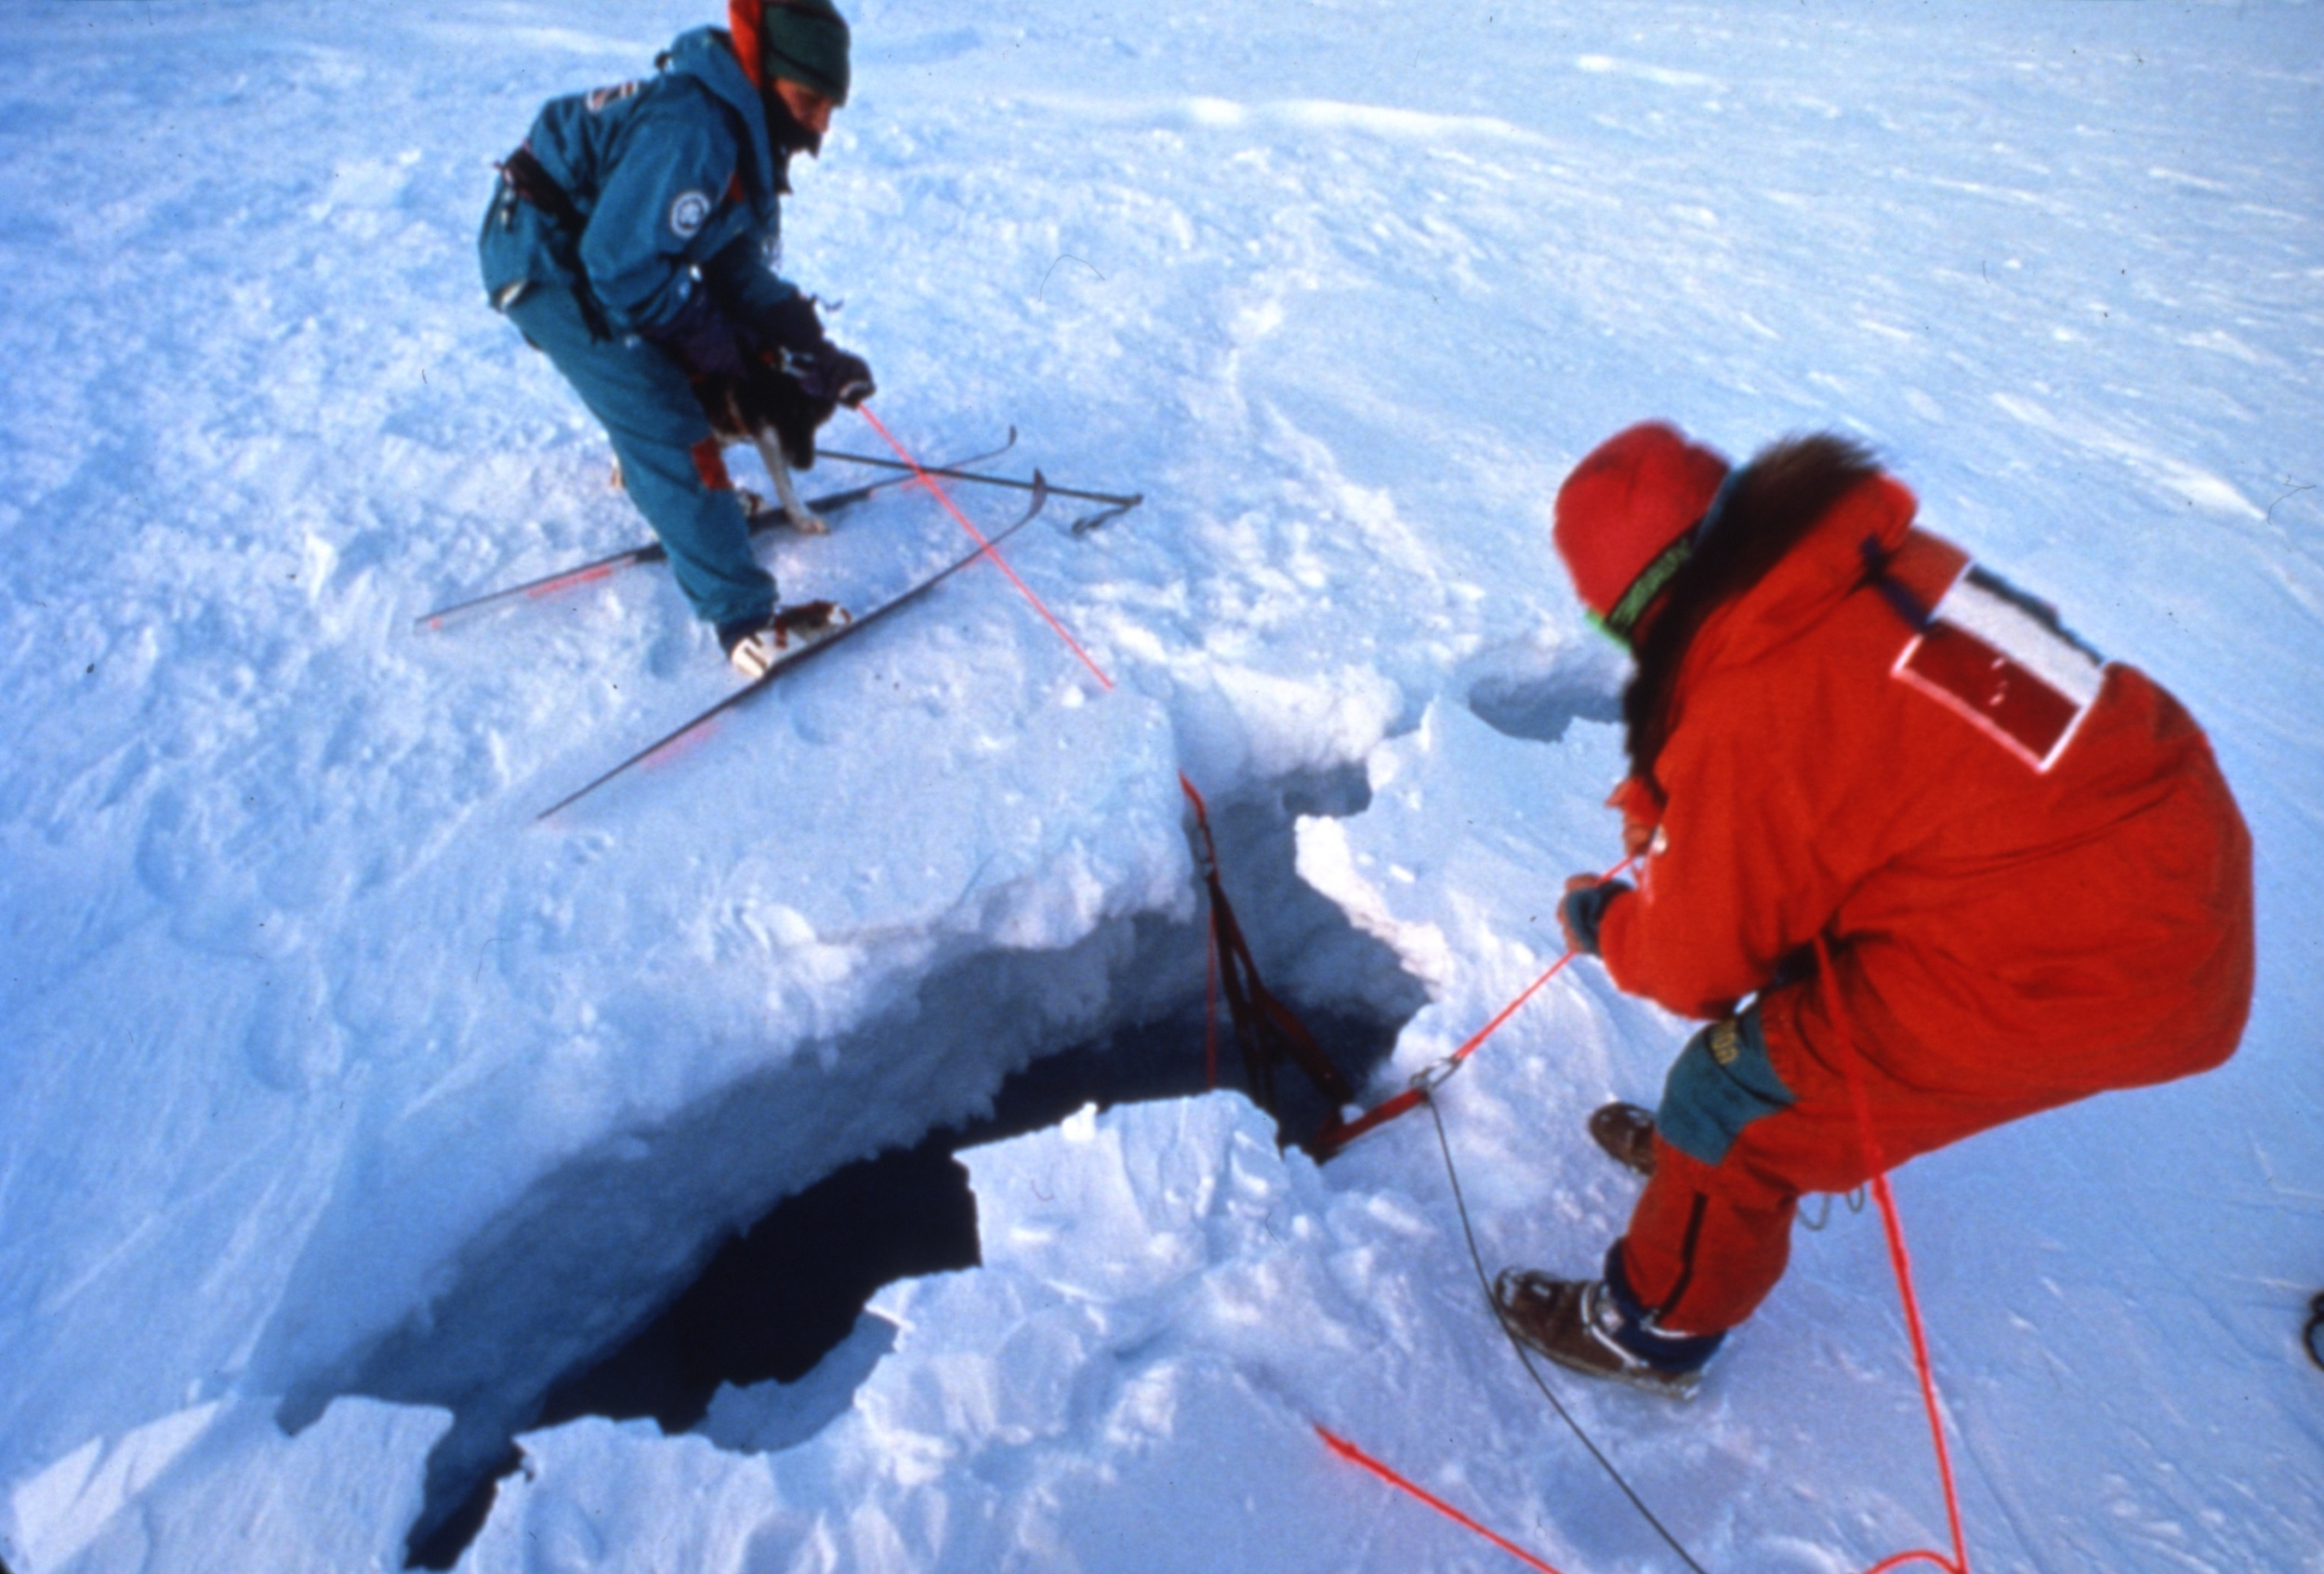 Geoff Somers (left) and Jean-Louis Etienne (right) work to extract a dog from a crevasse without falling in themselves. Photo © Will Steger